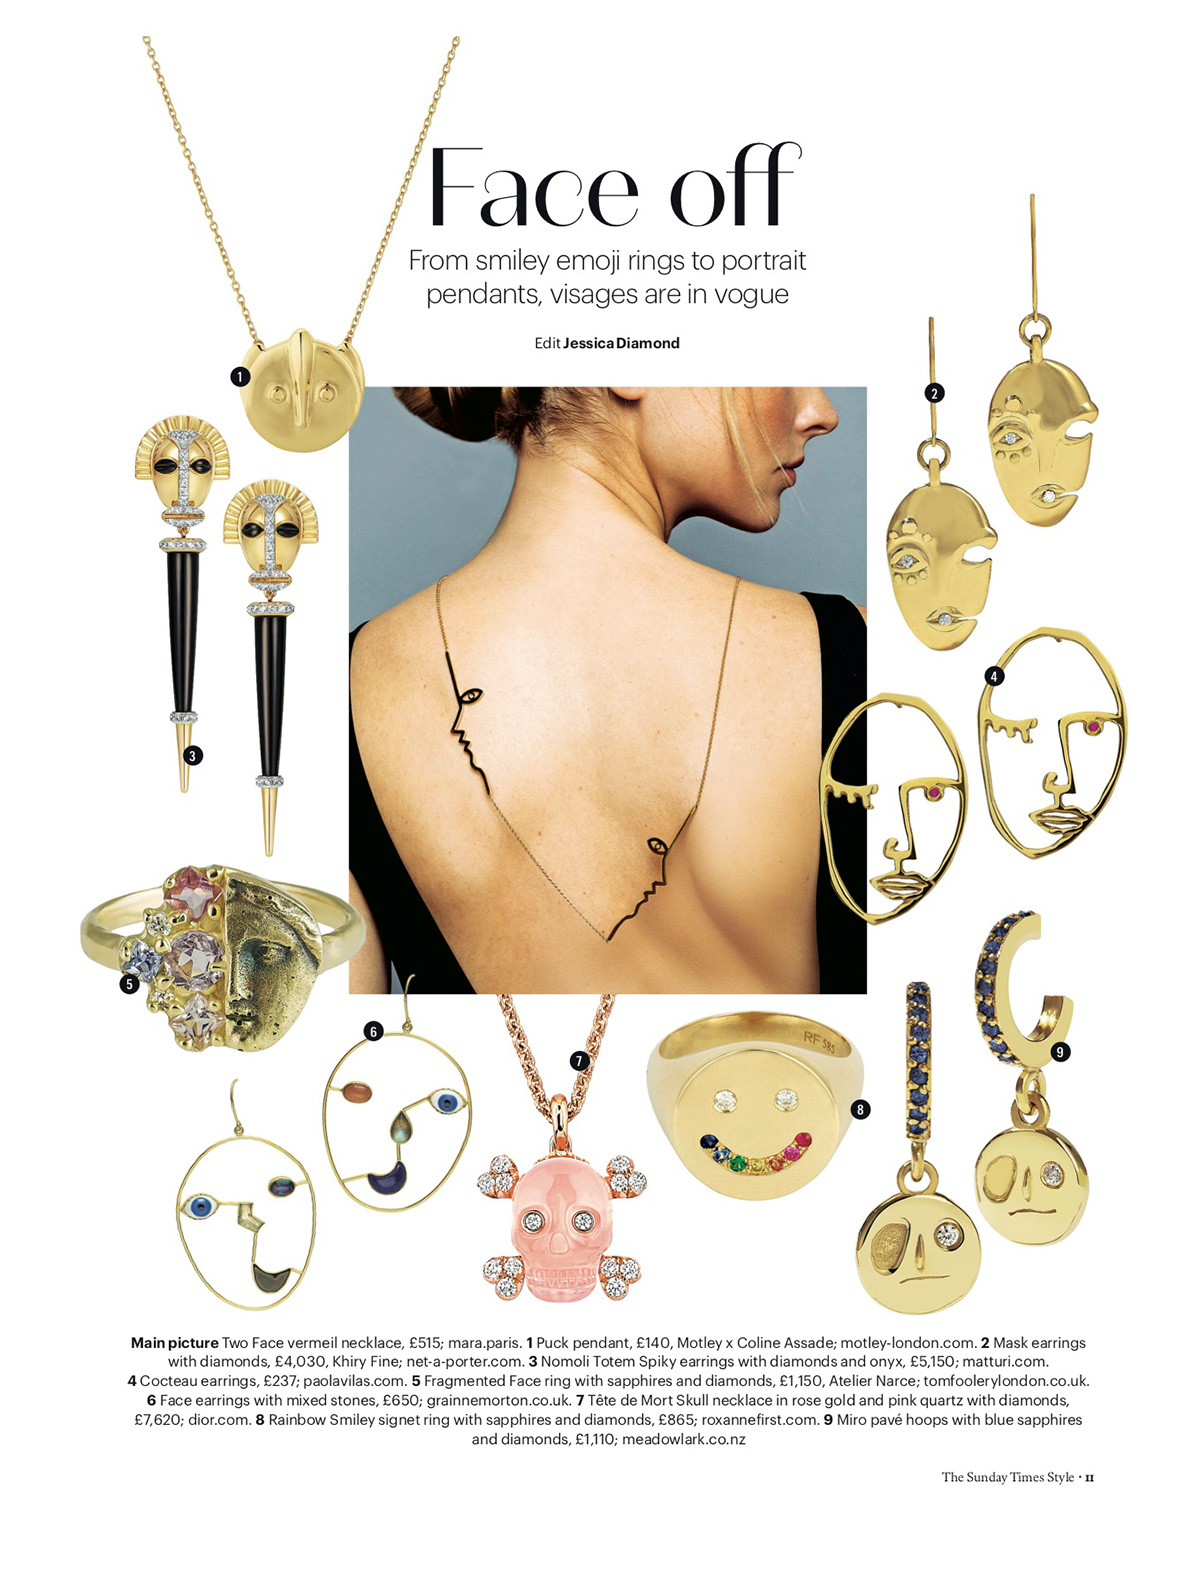 The Sunday Times - Face off. From smiley emoji rings to portrait pendants, visages are in vogue. By Jessica Diamond.